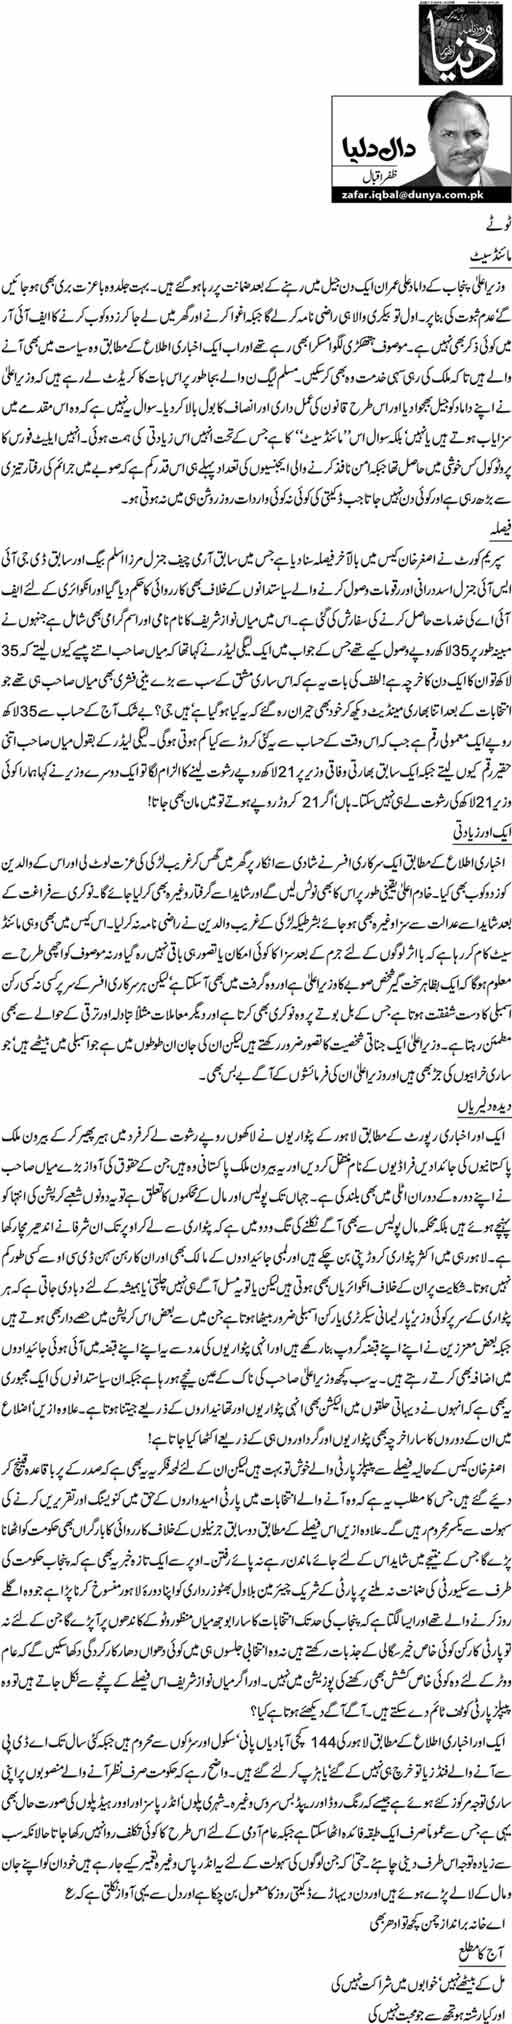 Tooty Mind set - Zafar Iqbal